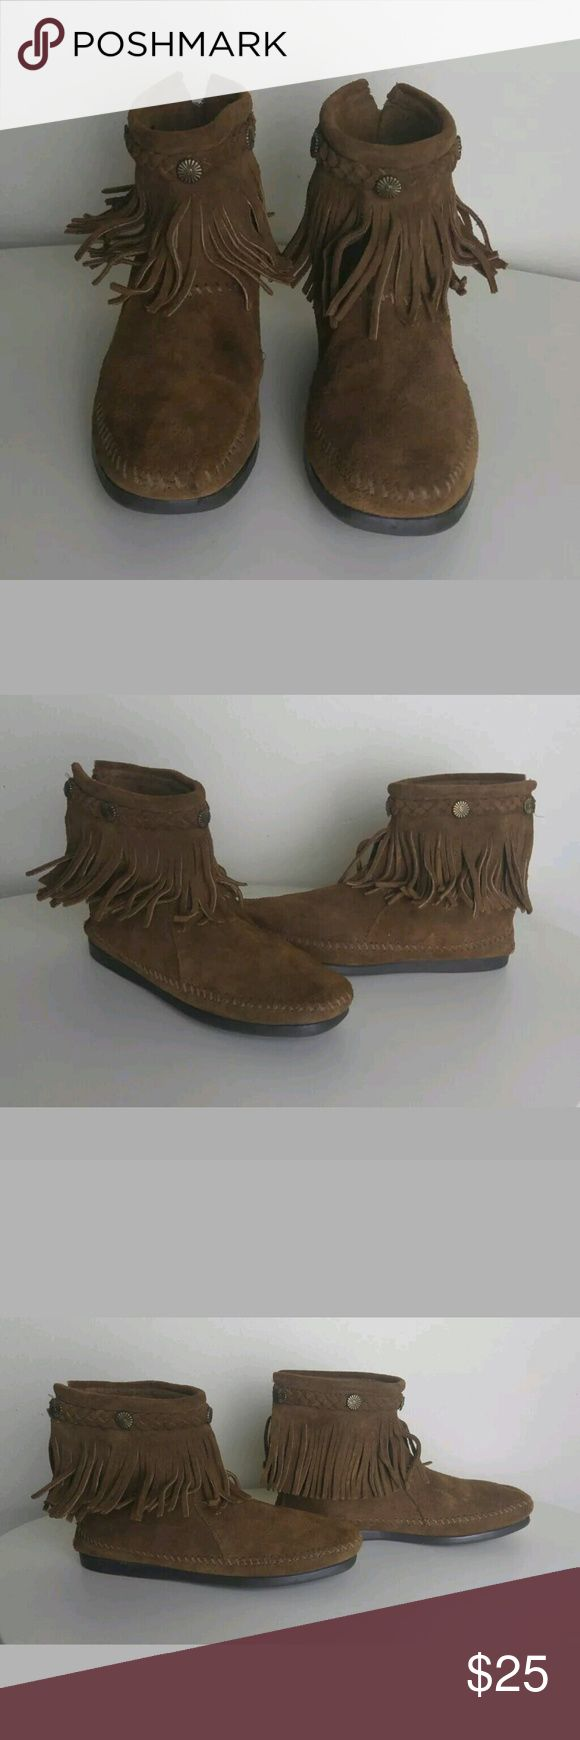 Minnetonka Fringe Brown Ankle Mocassin 6 Minnetonka Fringe Brown Suede Boho Medallion Back Zip Ankle Bootie Mocassin 6. Booties are pre owned. Minor scuffs on suede from normal use. No rips or holes. Soles in great condition, great grip. Minnetonka Shoes Ankle Boots & Booties